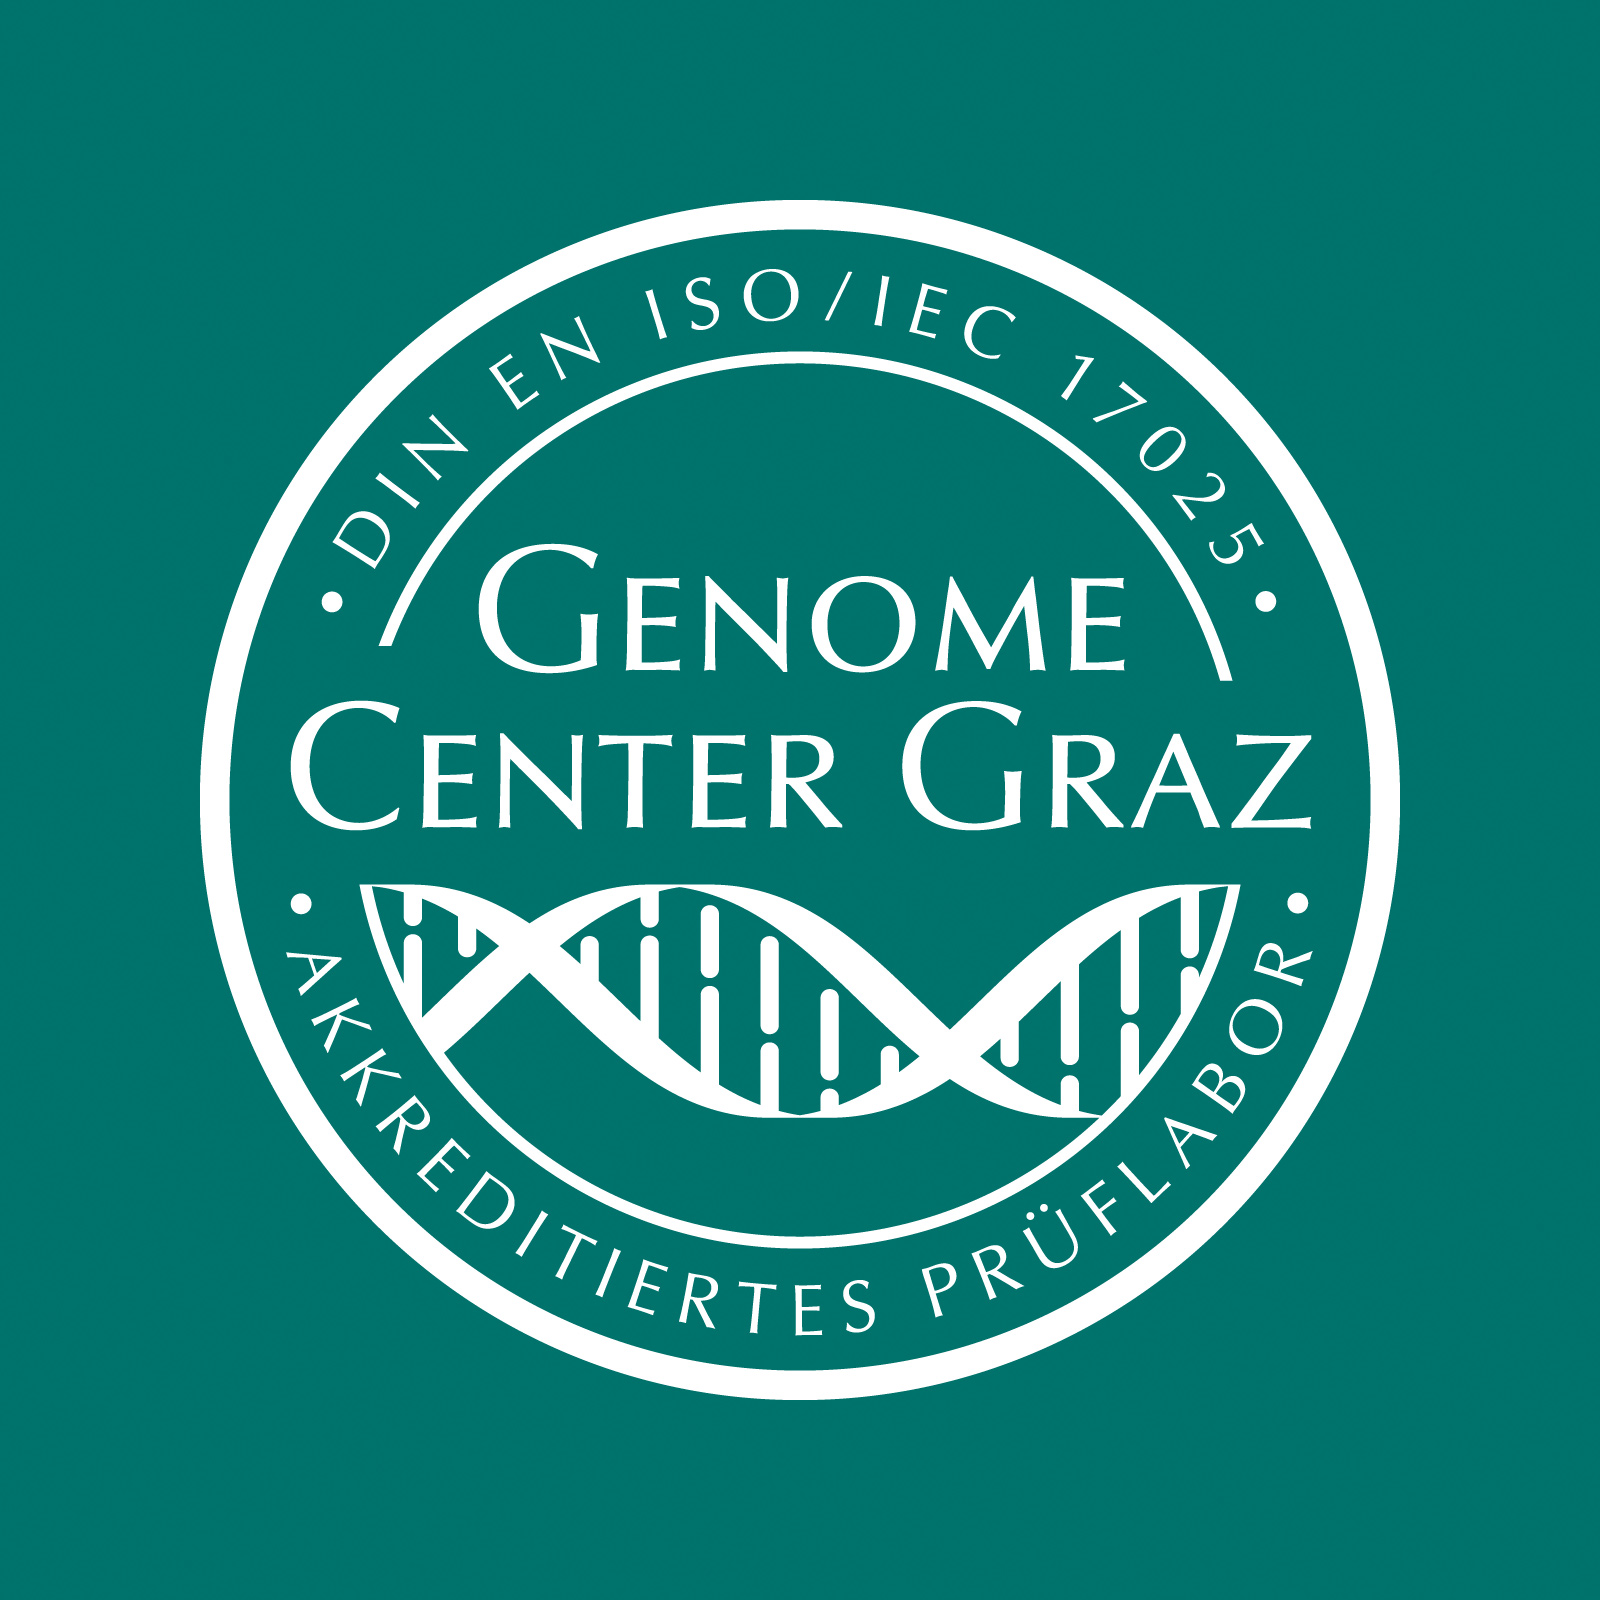 Genome Center Graz